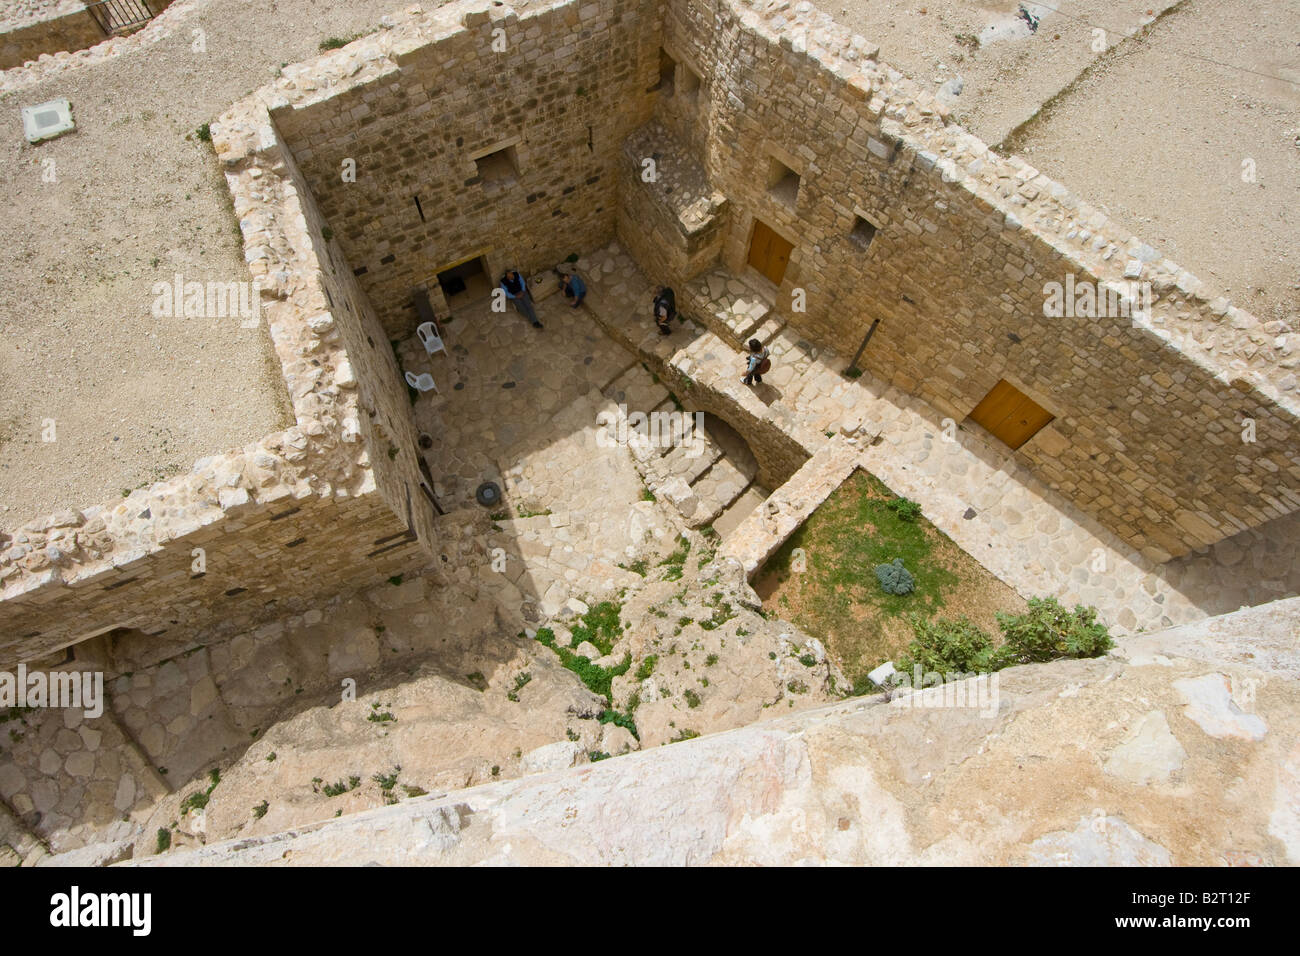 Inside Qalaat Misyaf One of the Assassin Castles in Syria - Stock Image